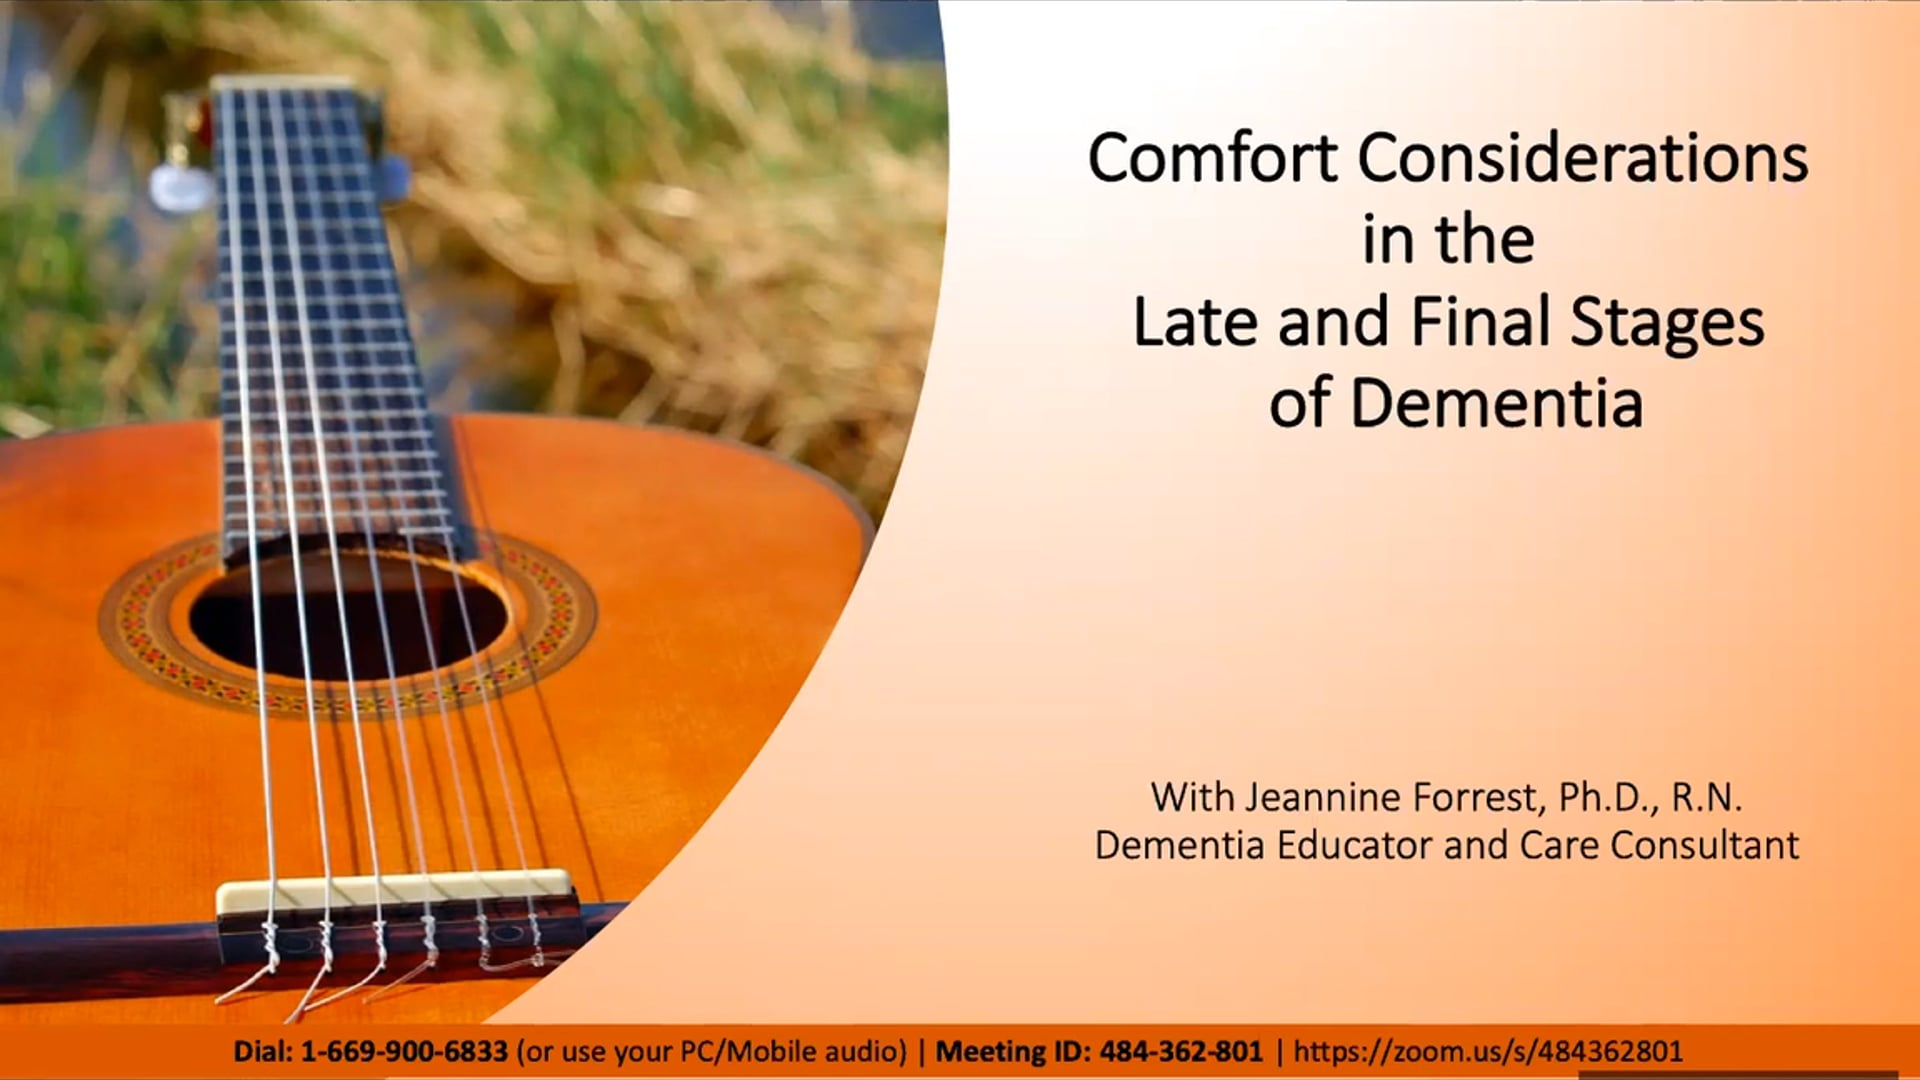 Comfort Considerations in Final Stages of Dementia